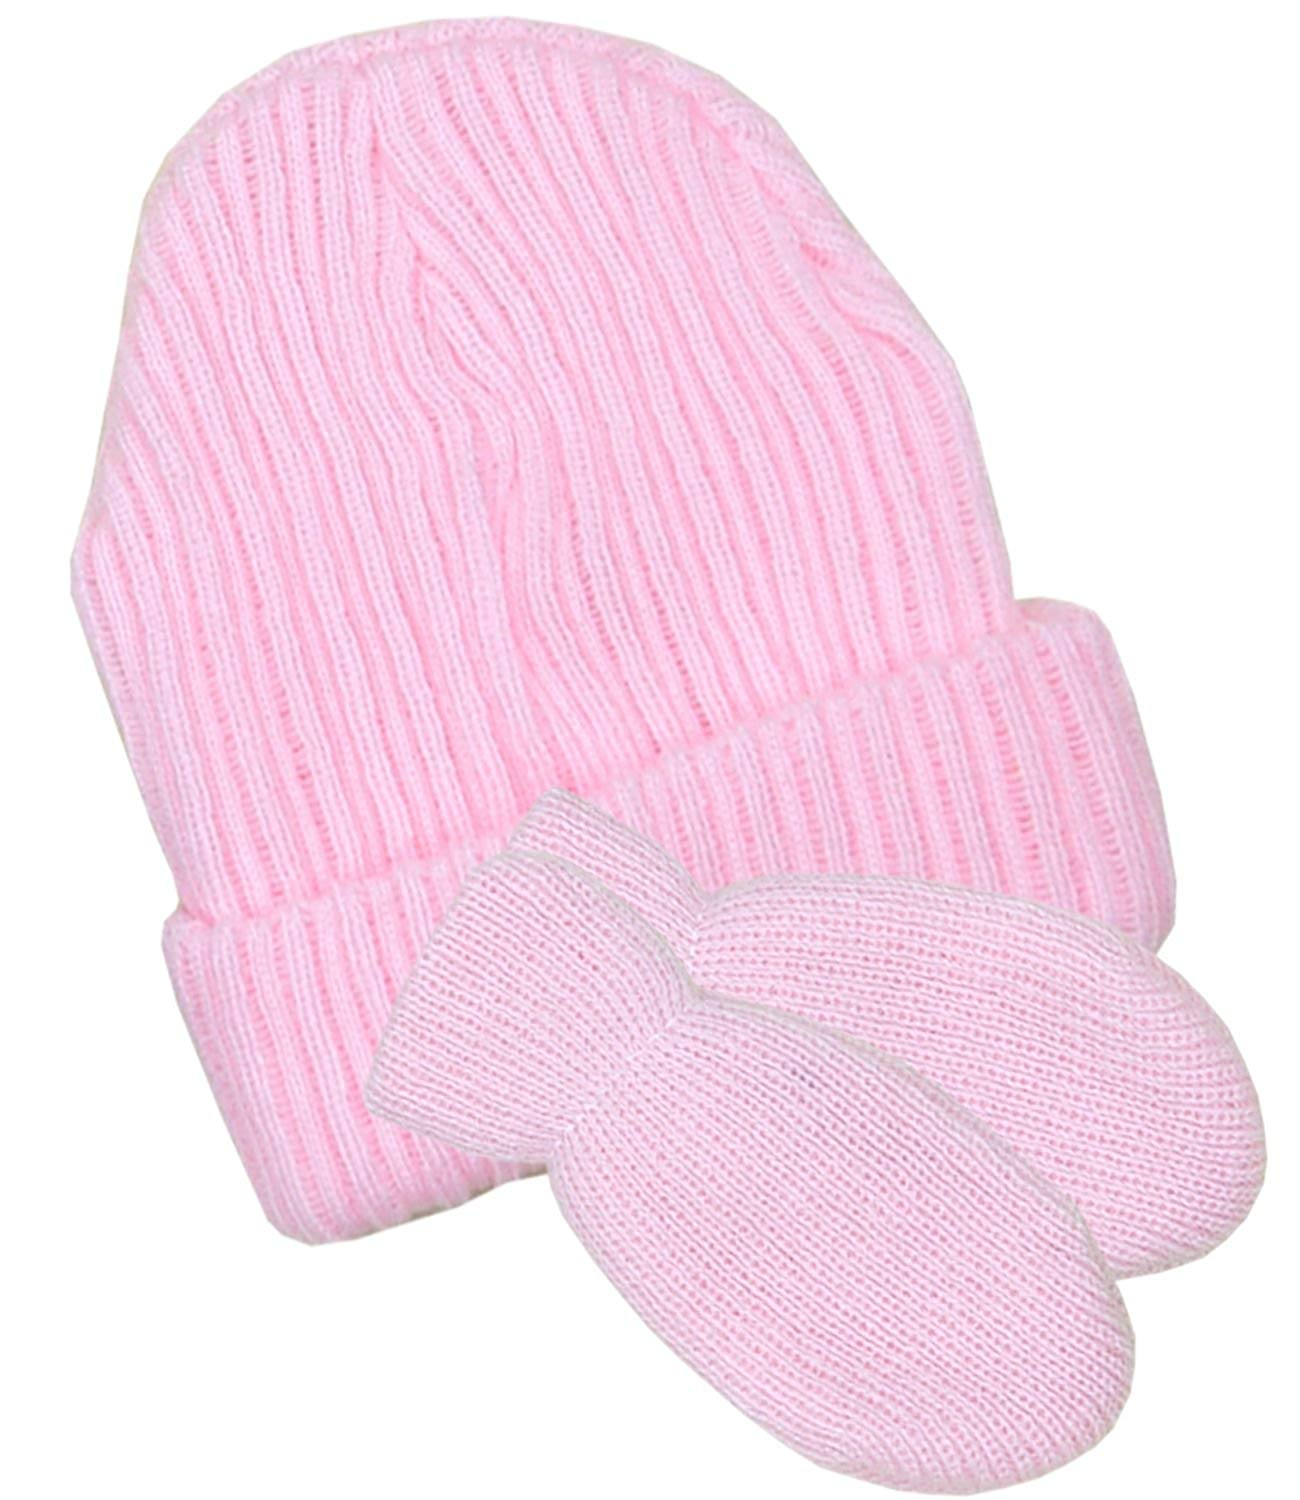 848b3b0341c Get Quotations · BabyPrem Baby Hat   Mittens Set Winter Clothes Knitted  Pink Blue White Boy Girl